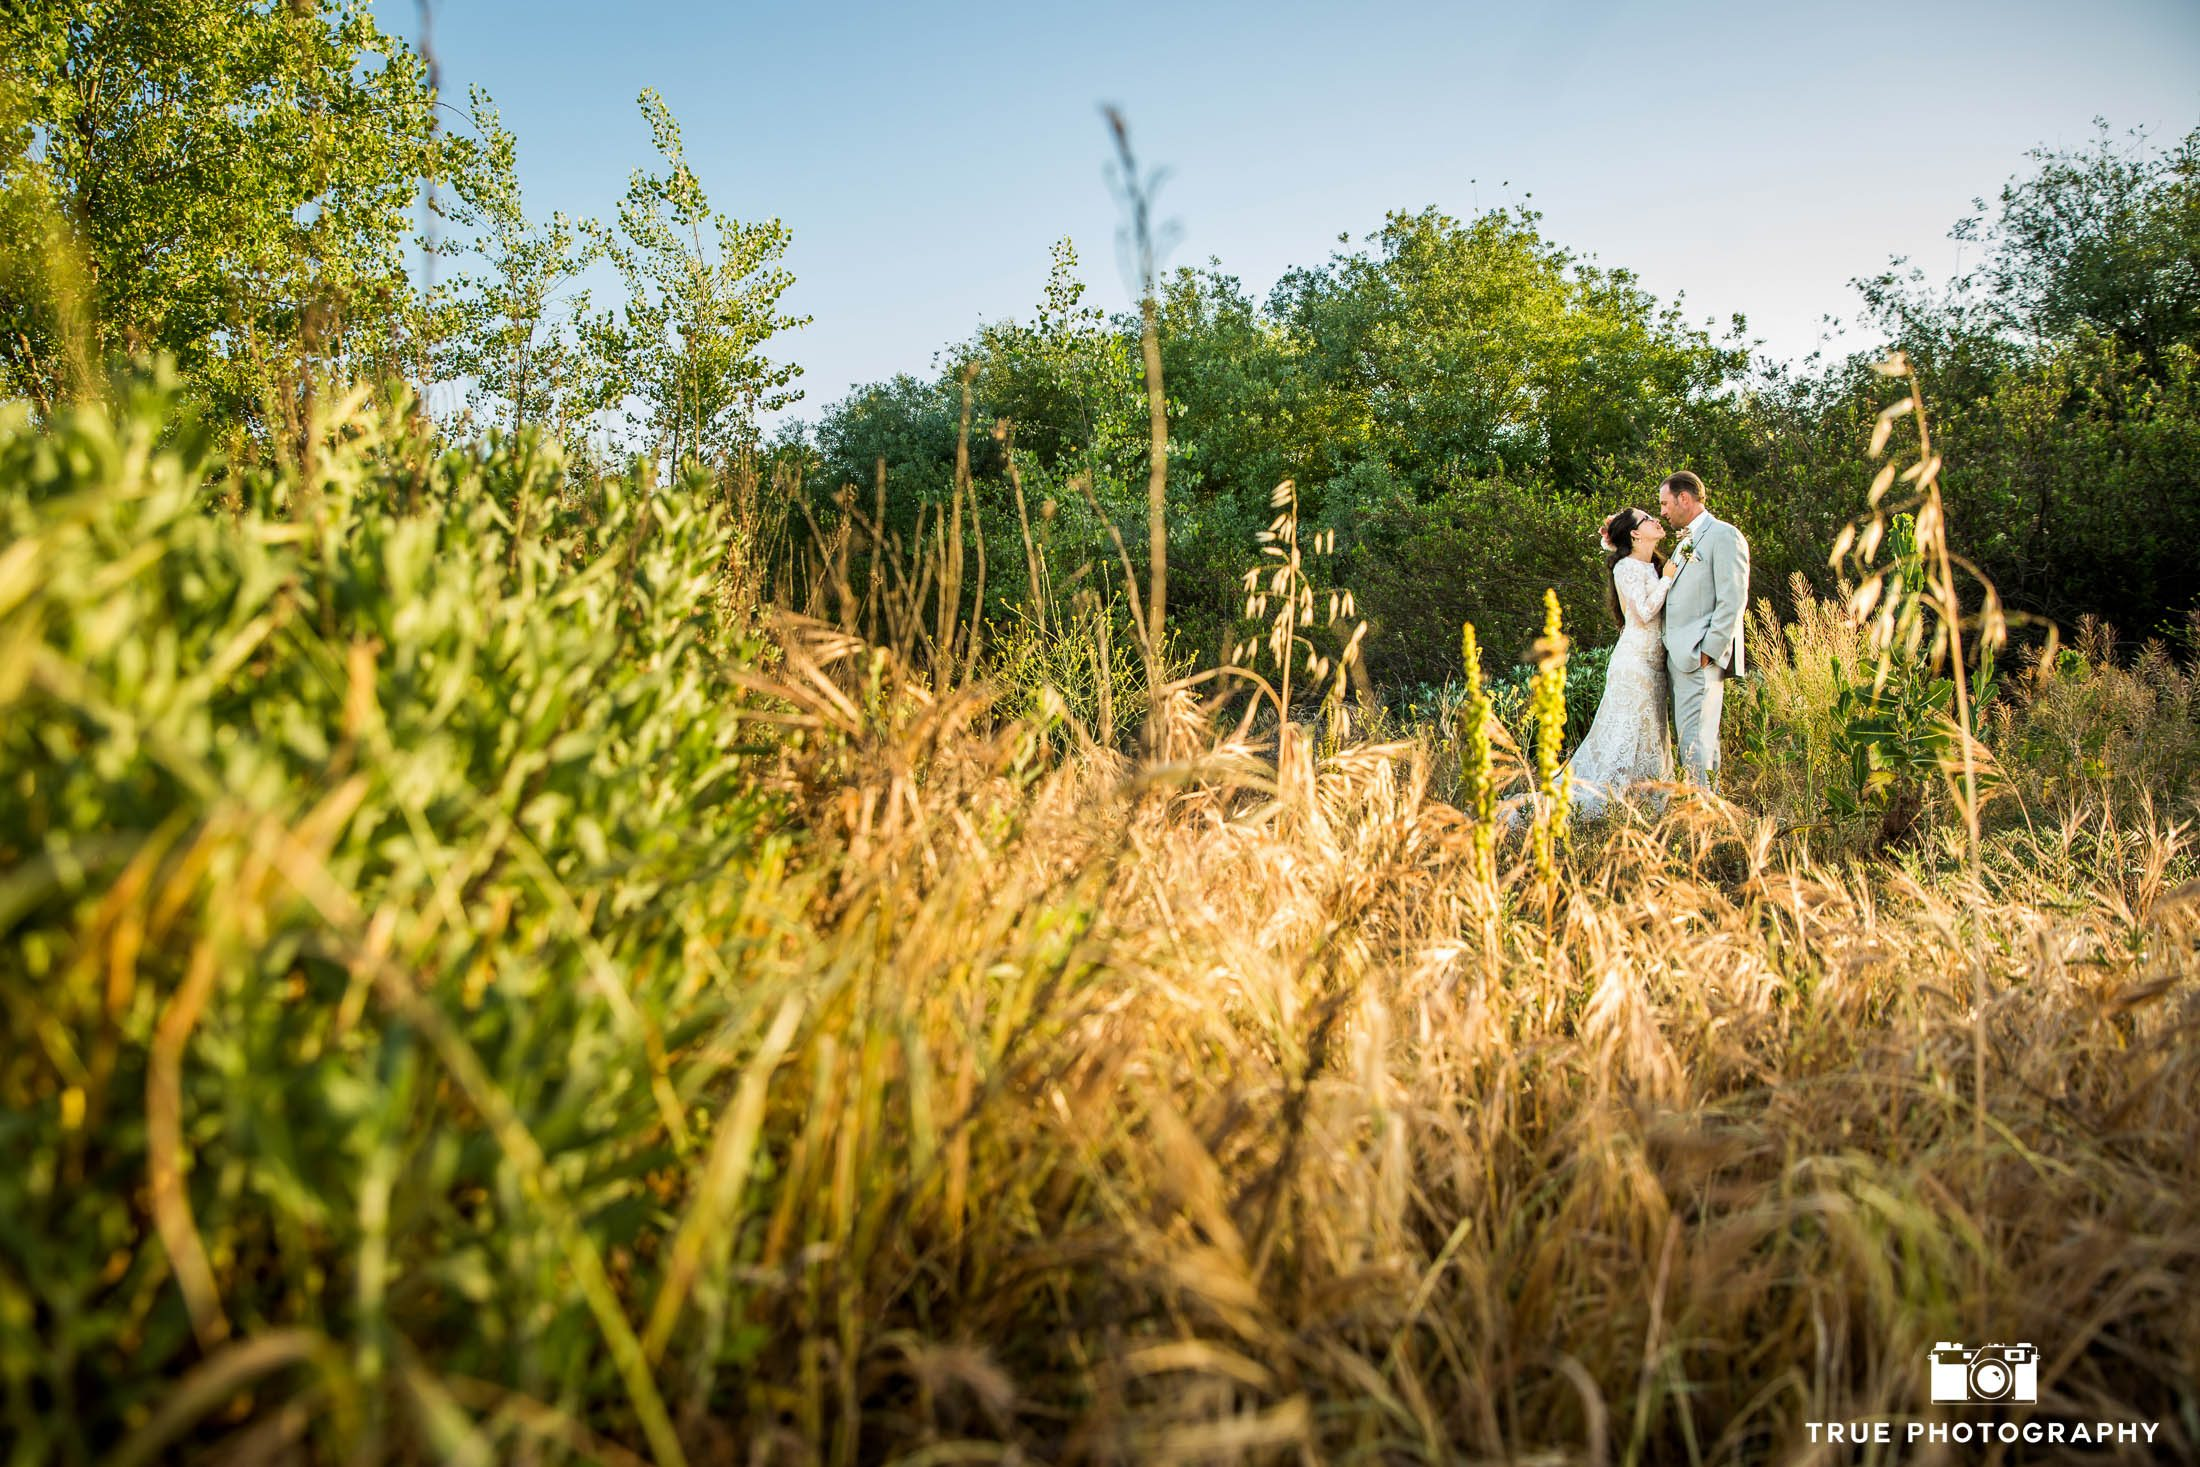 Bride and Groom wedding portraits standing in grassy field with natural light